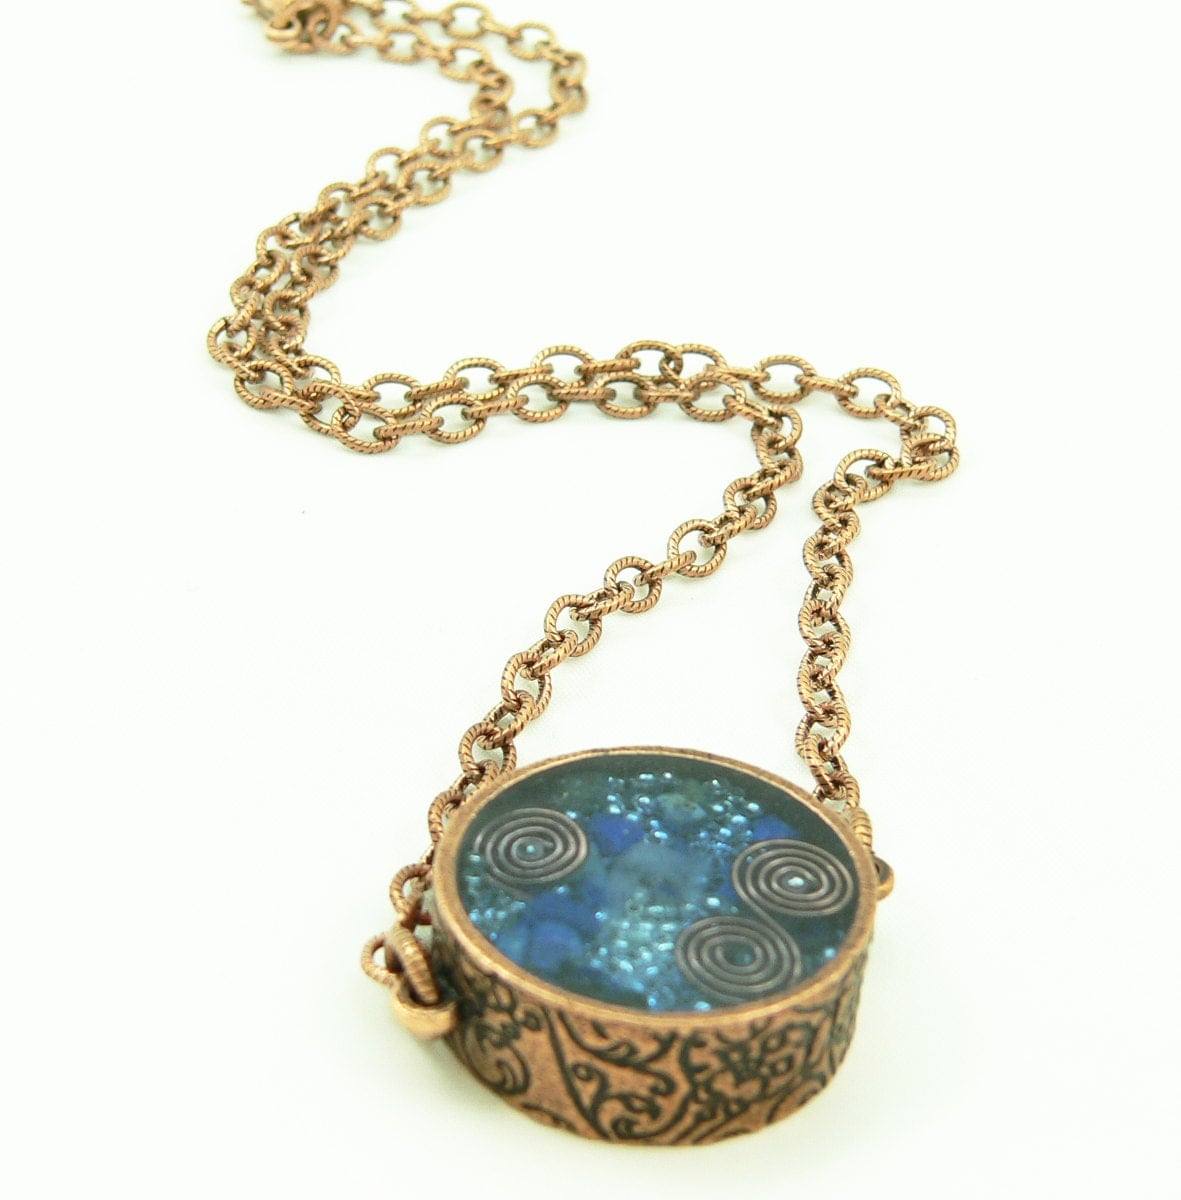 Orgone Energy Pendant Double Sided Antique Copper With Lapis